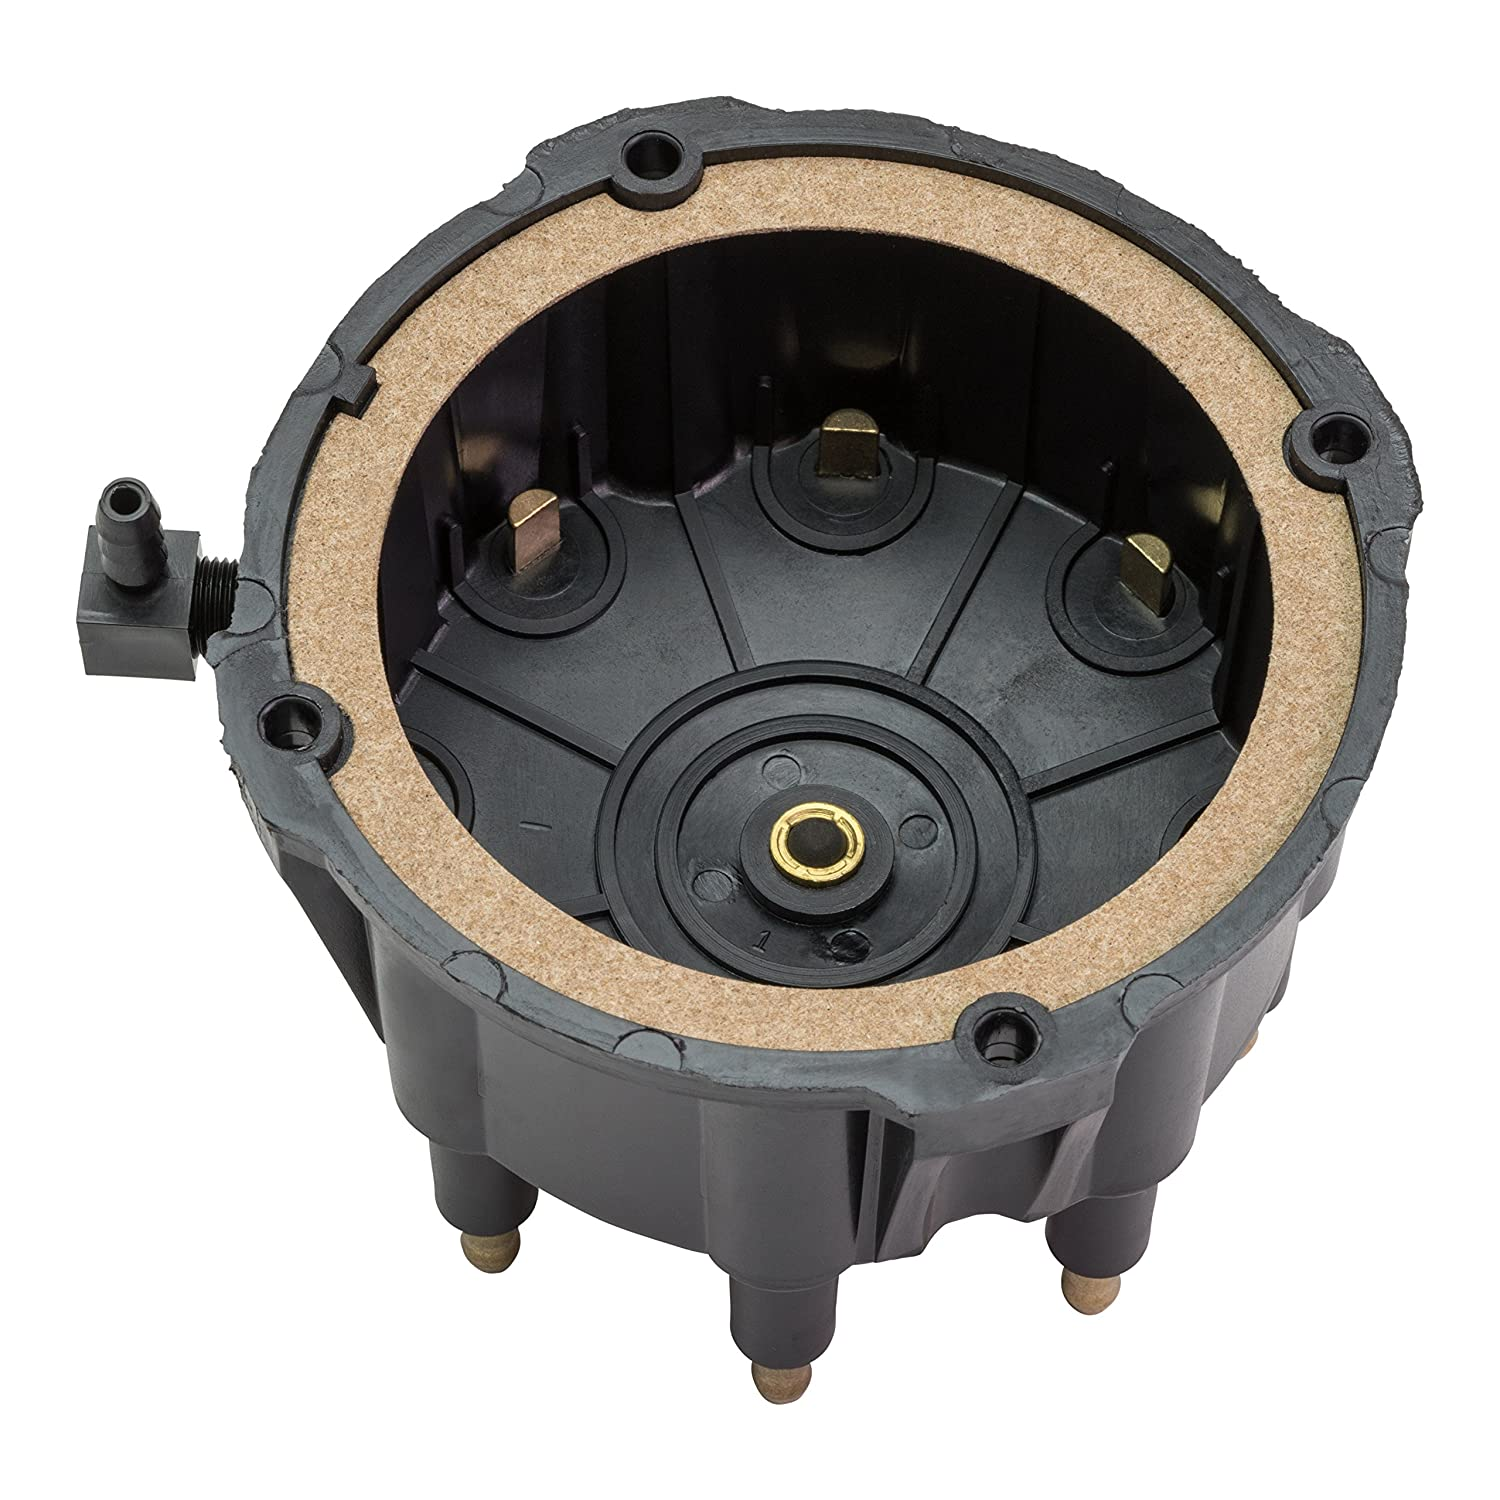 Marinized V-8 Engines by General Motors with Thunderbolt IV and V HEI Ignition Systems Quicksilver 805759Q3 Distributor Cap Kit